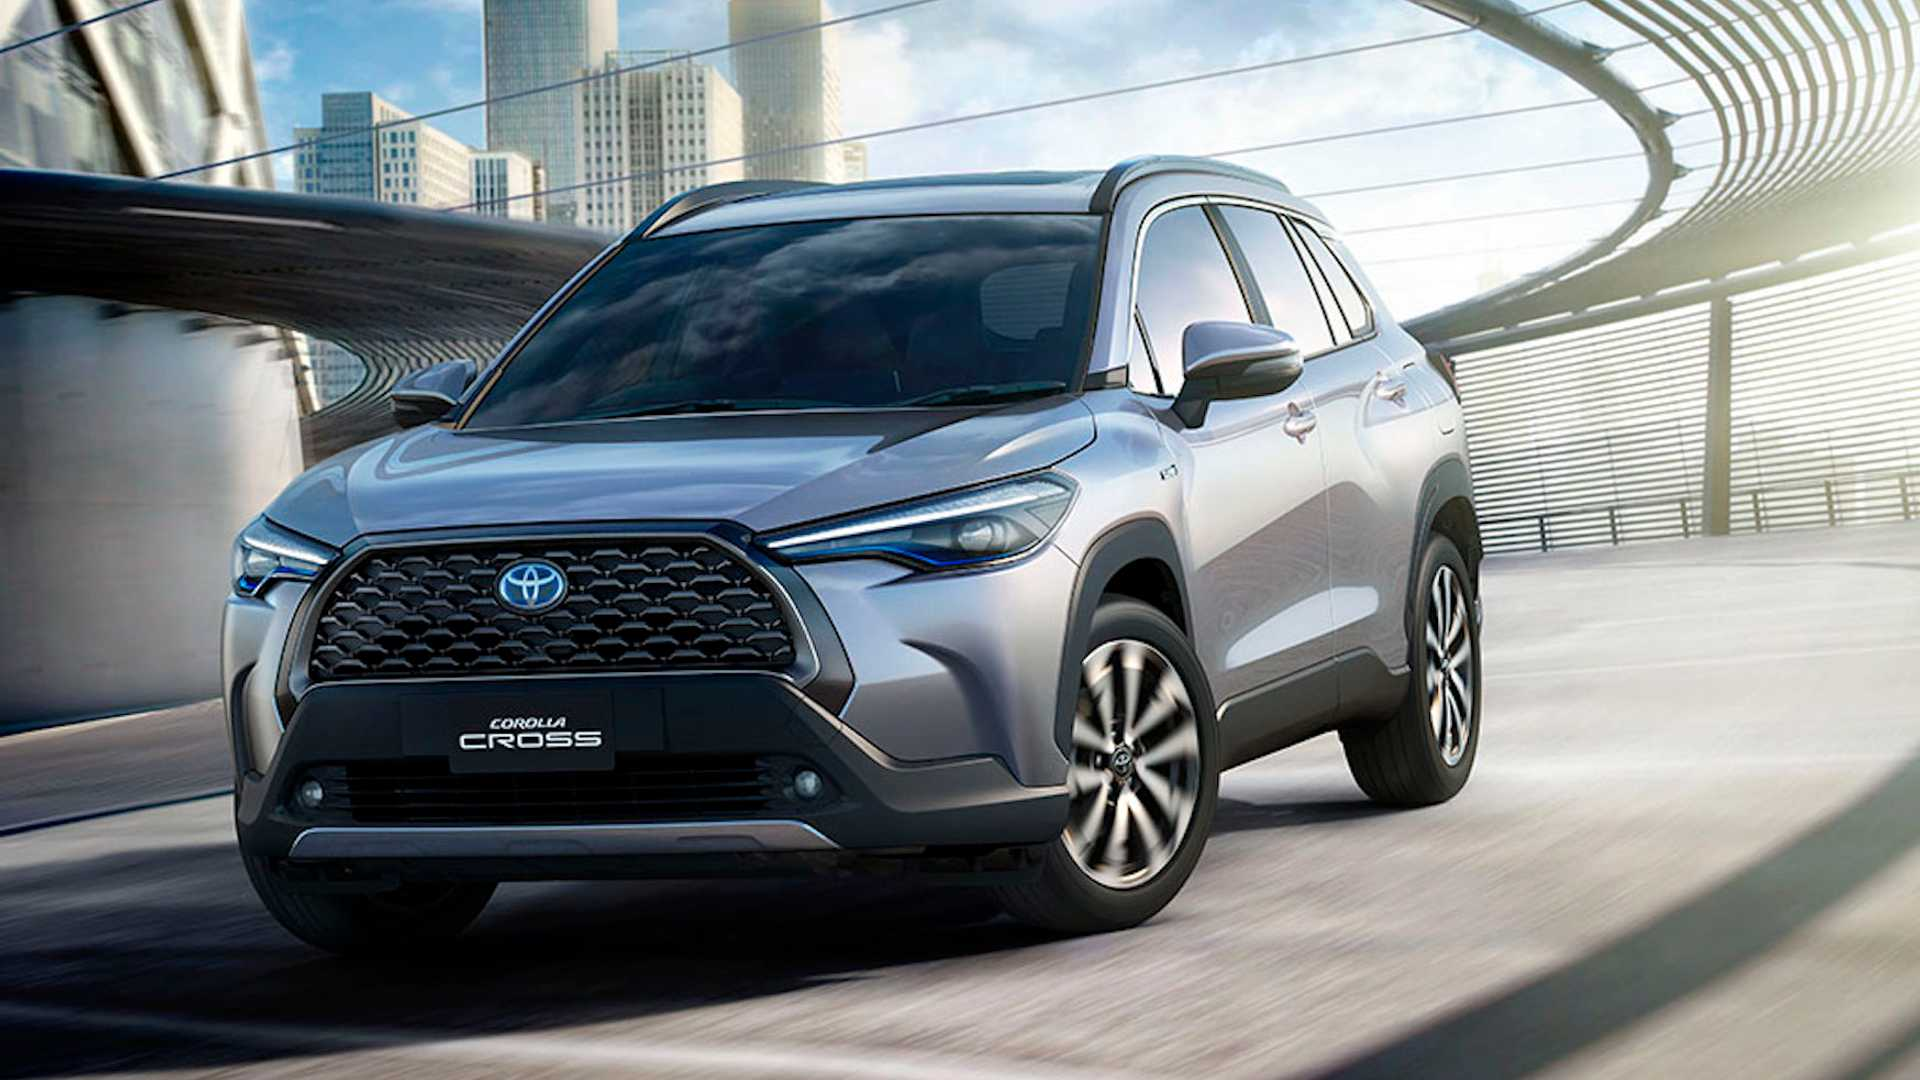 2021 Toyota Corolla Cross Debuts With Hybrid Power In Thailand